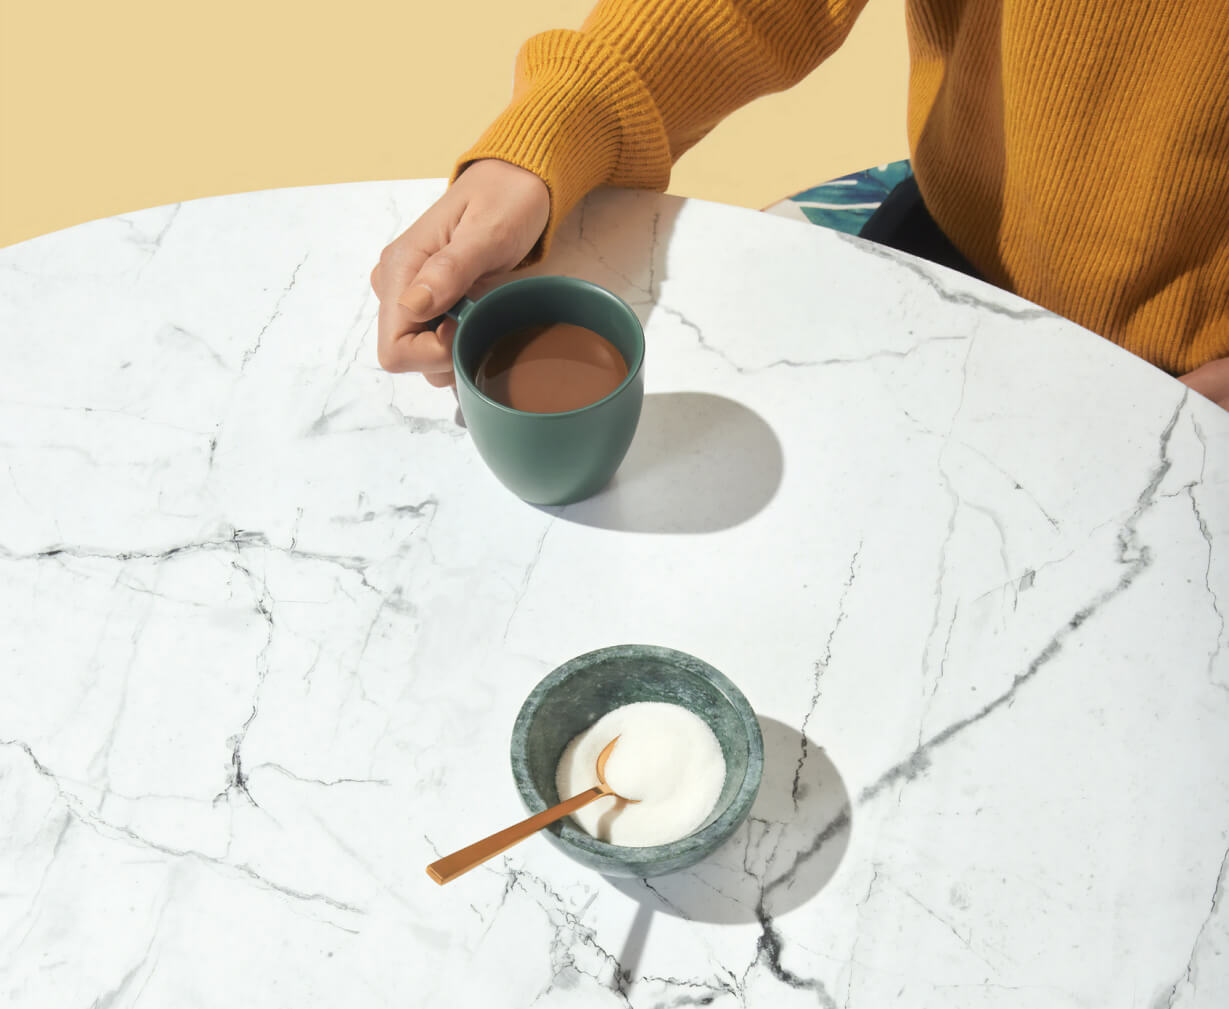 Person holding a coffee cup on a table.